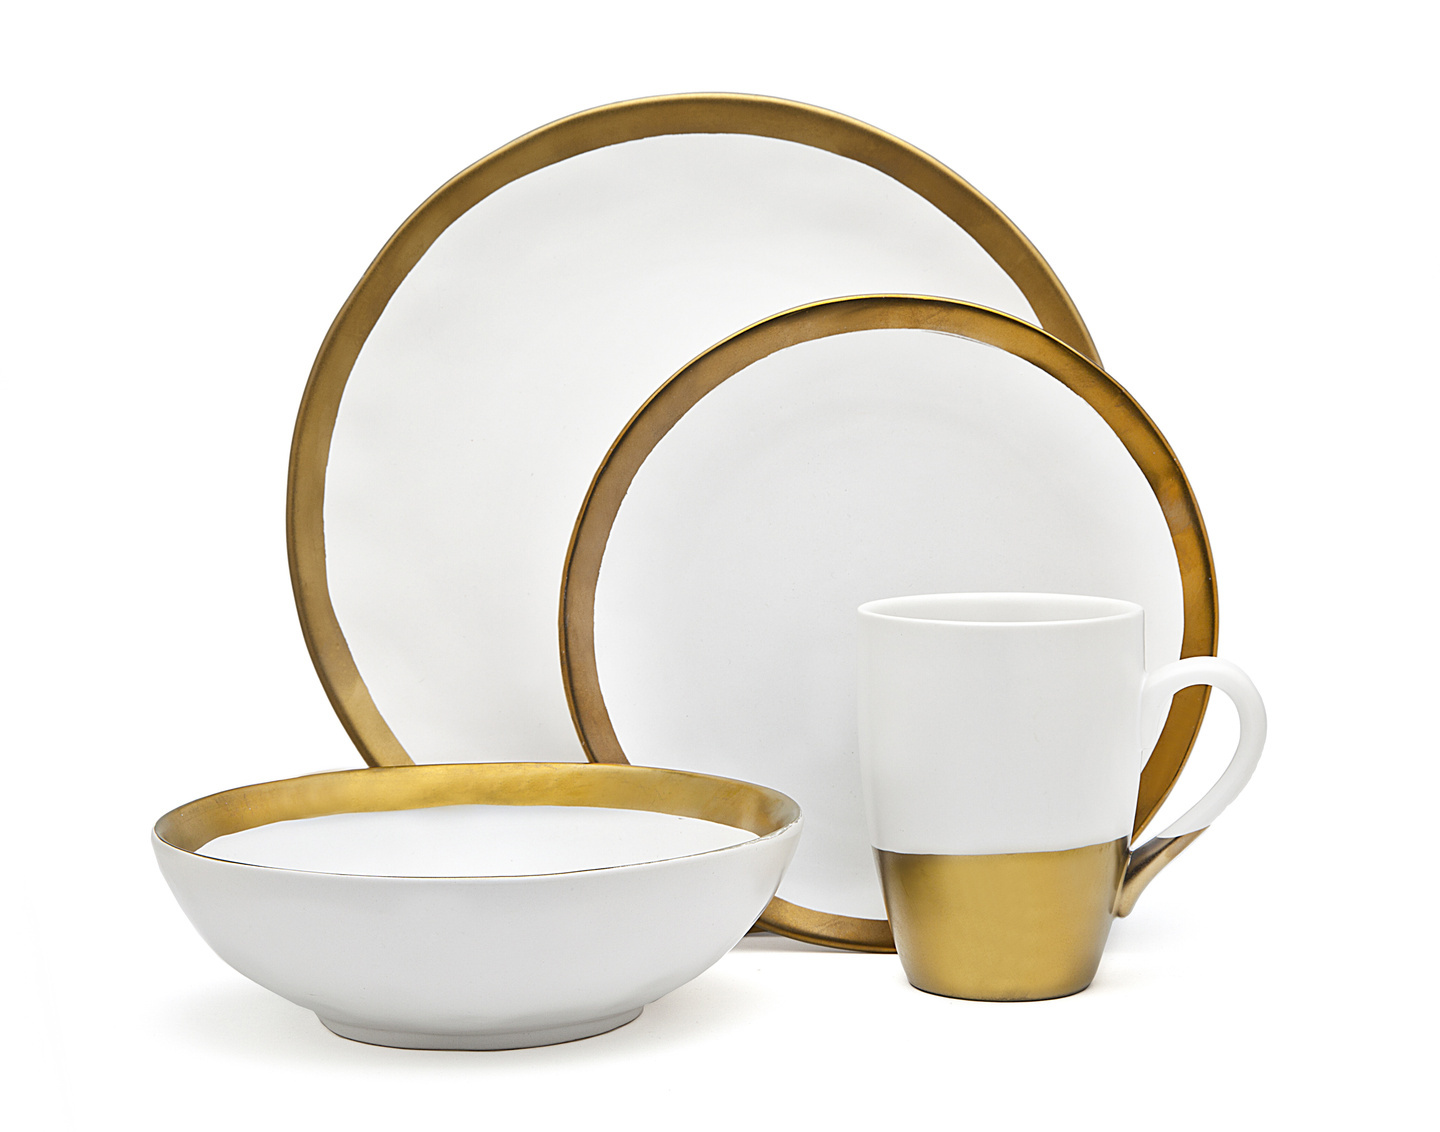 Terre D'or 4 Pc Dinner Set White Gold